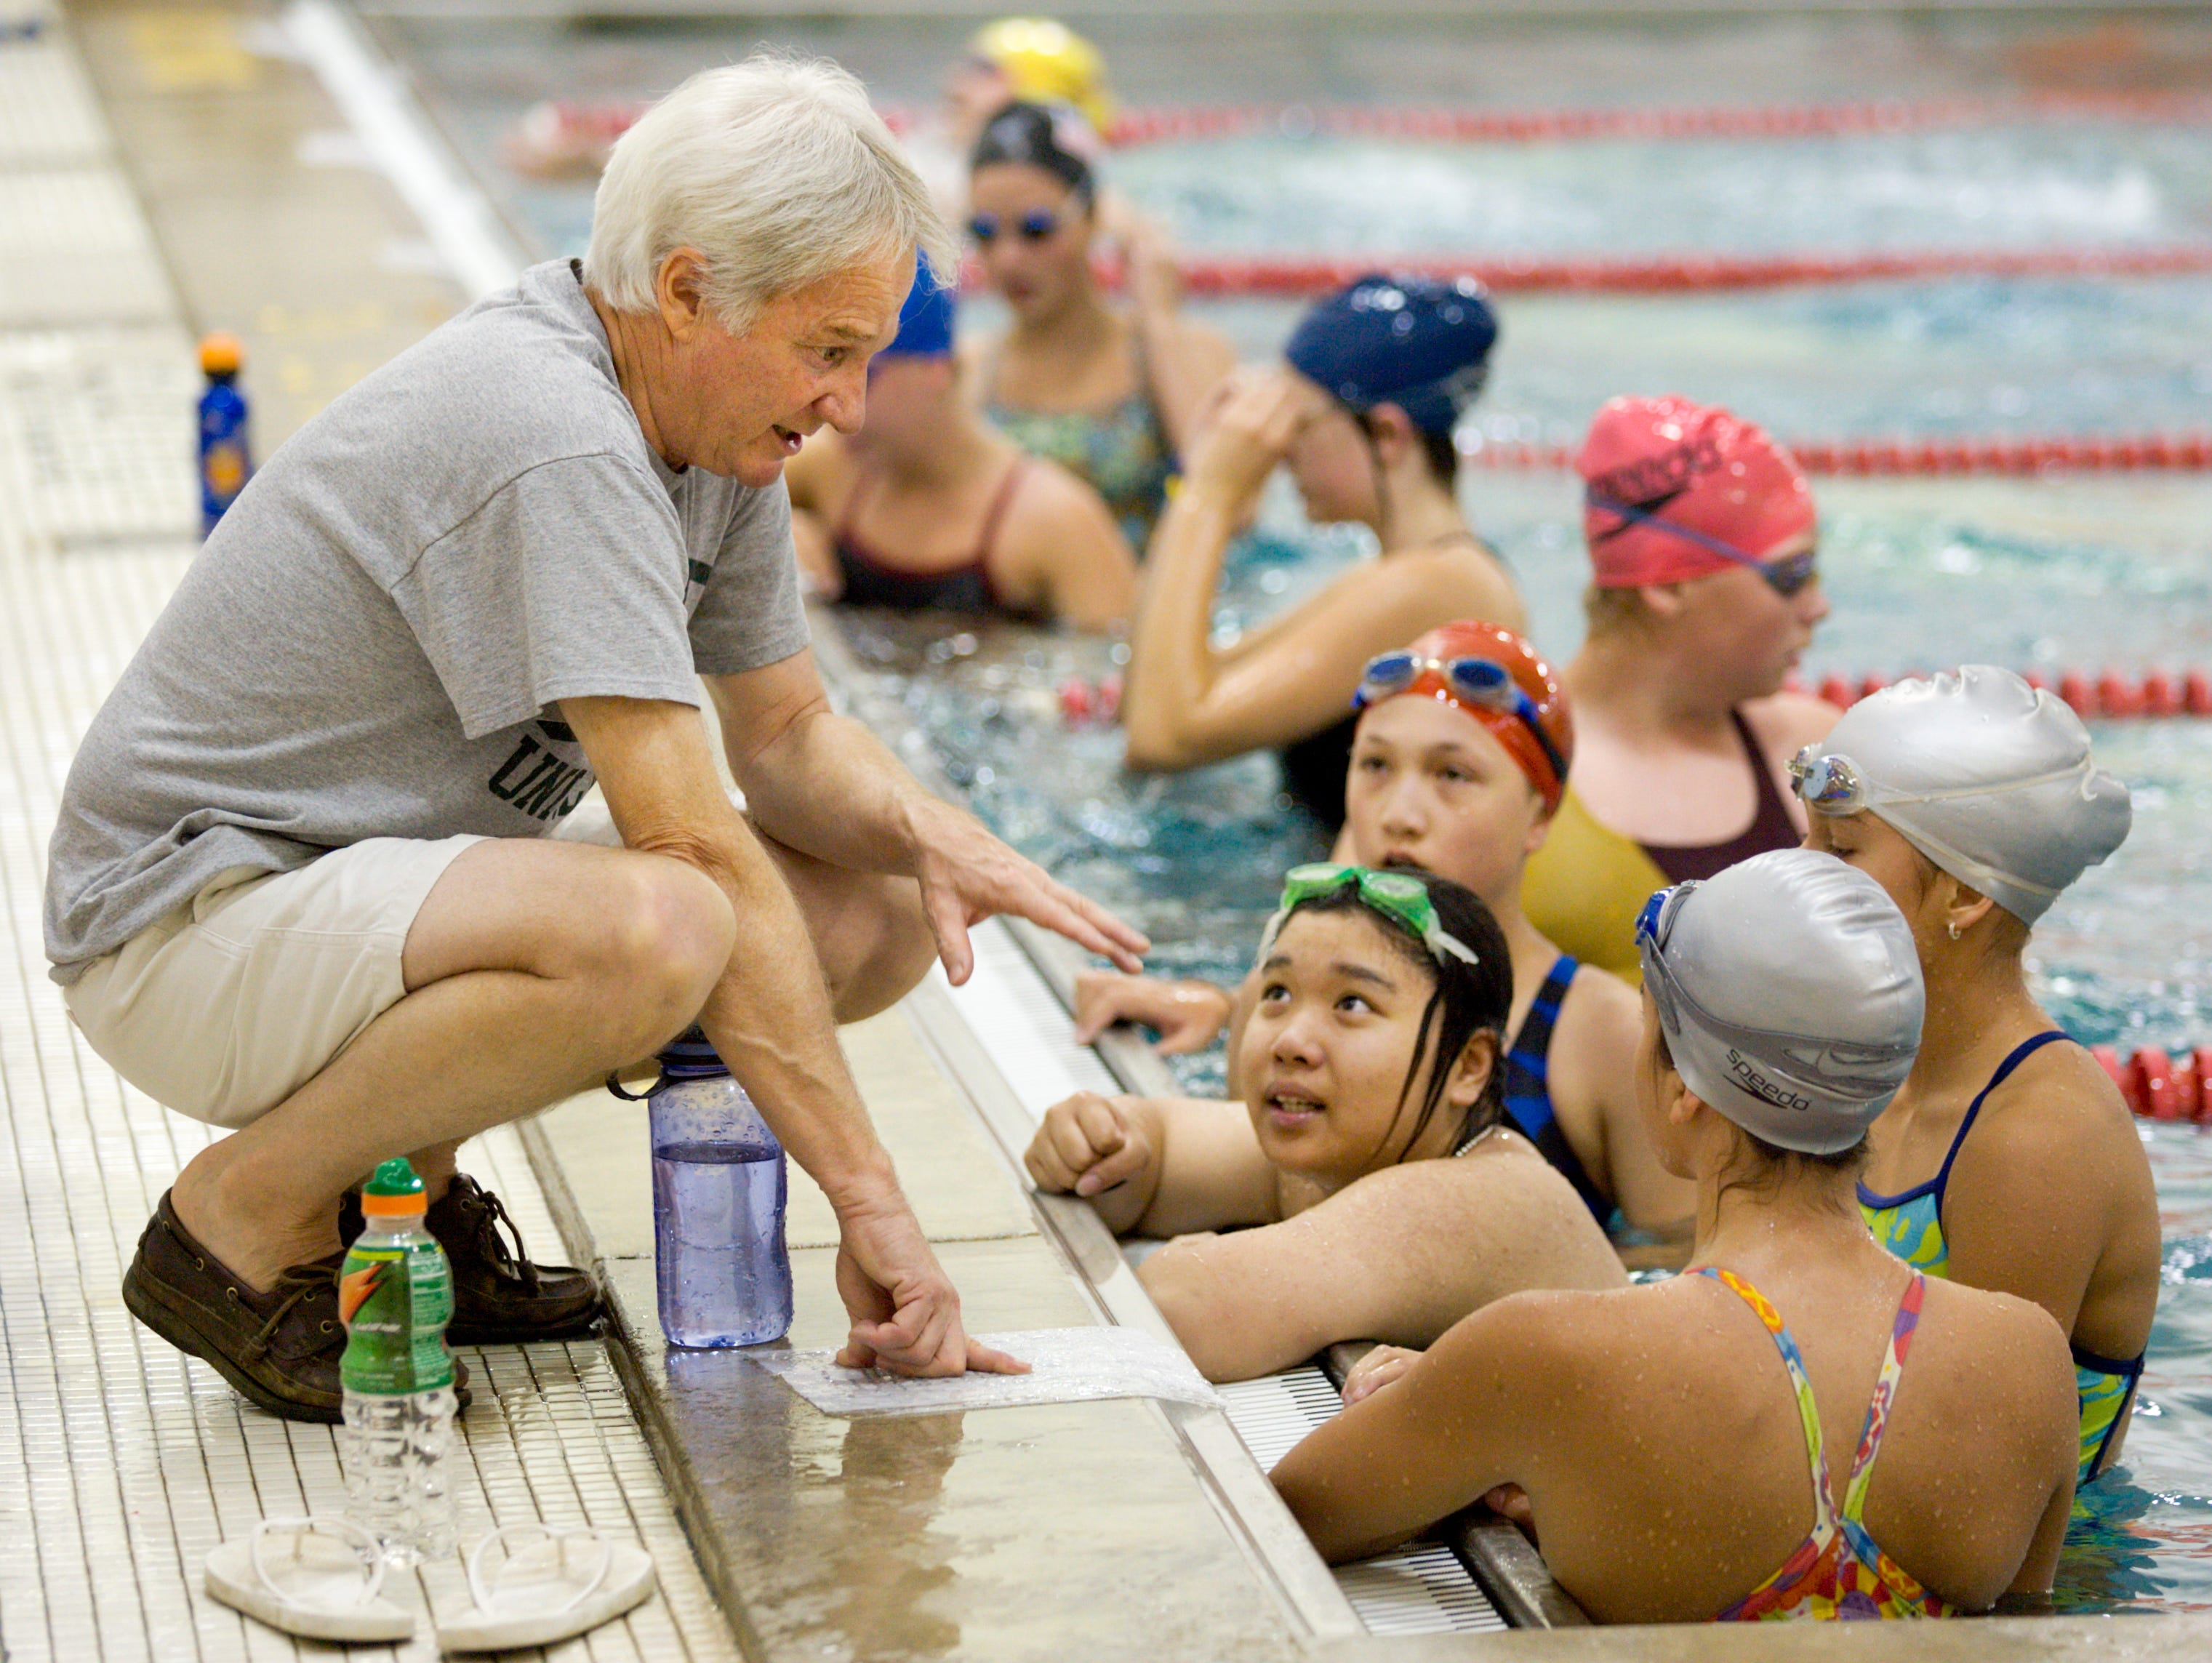 Roy Staley gives instructions to swimmers on his Ithaca High girls' team during the first practice of the 2008 season. Staley, 70, announced his retirement from the position after nearly 40 years of coaching at Ithaca High.